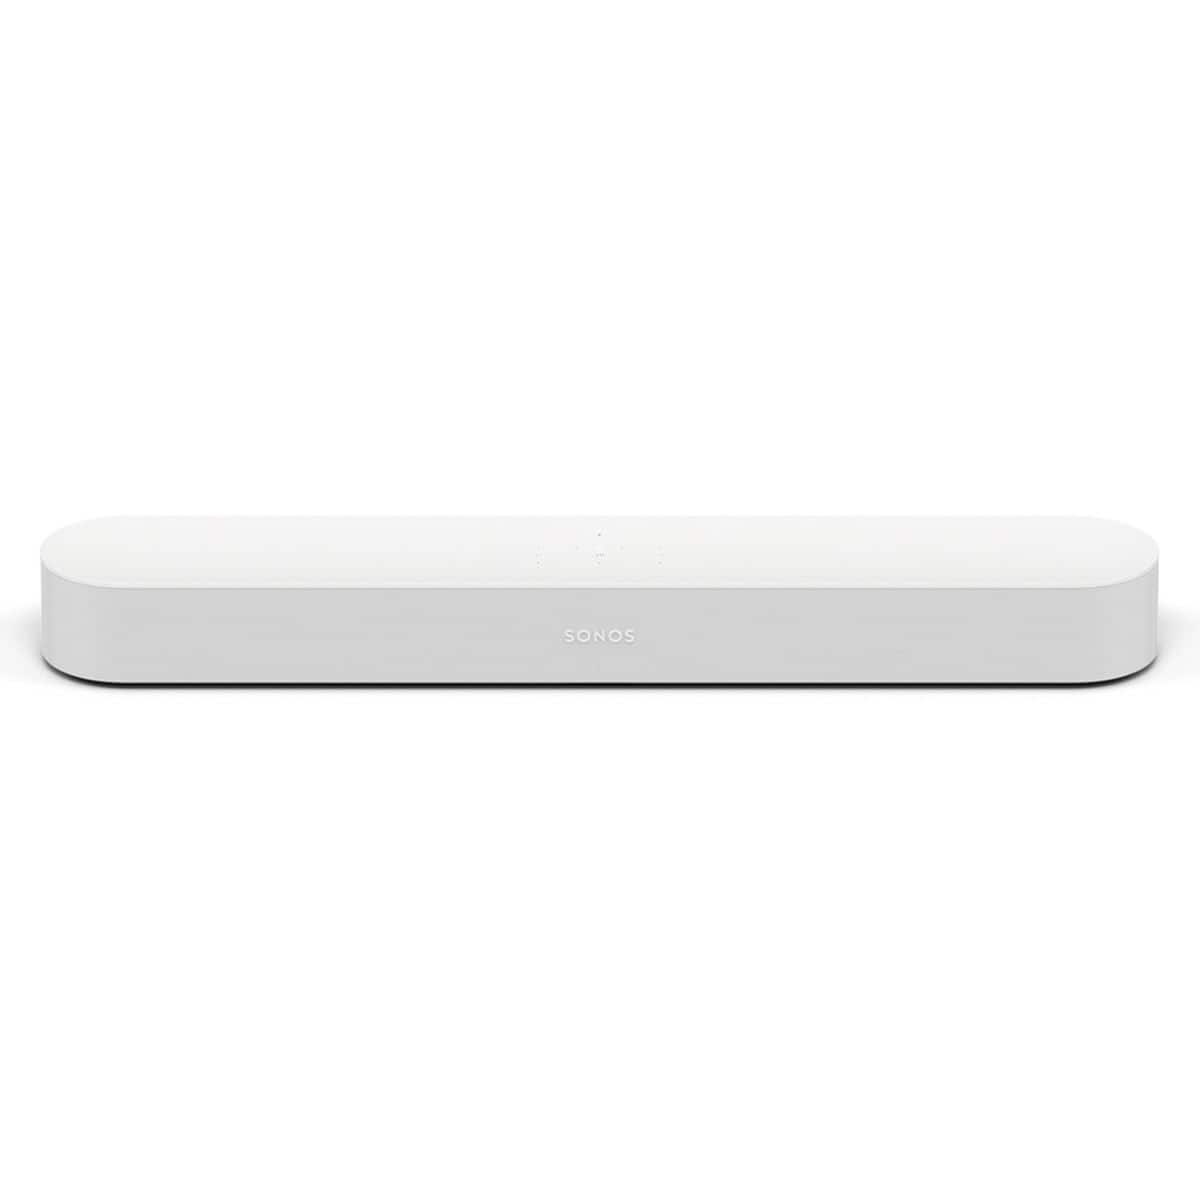 Sonos Beam (Many other Sonos products included)